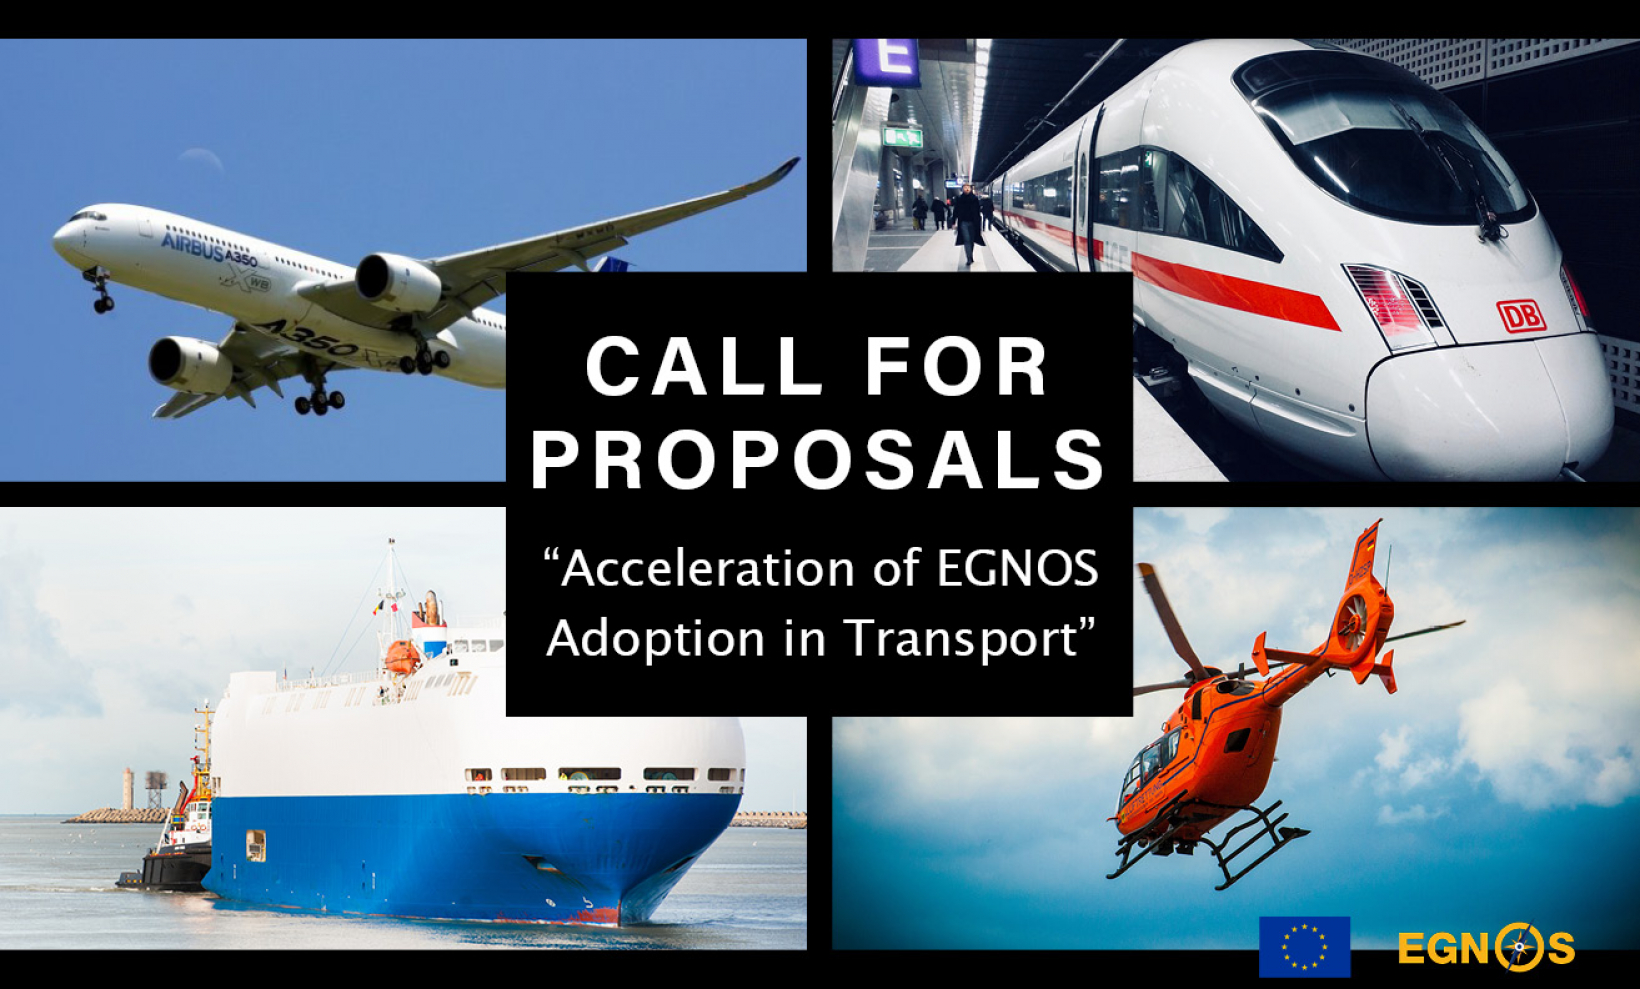 """CALL FOR PROPOSALS """"Acceleration of EGNOS Adoption in Transport"""""""